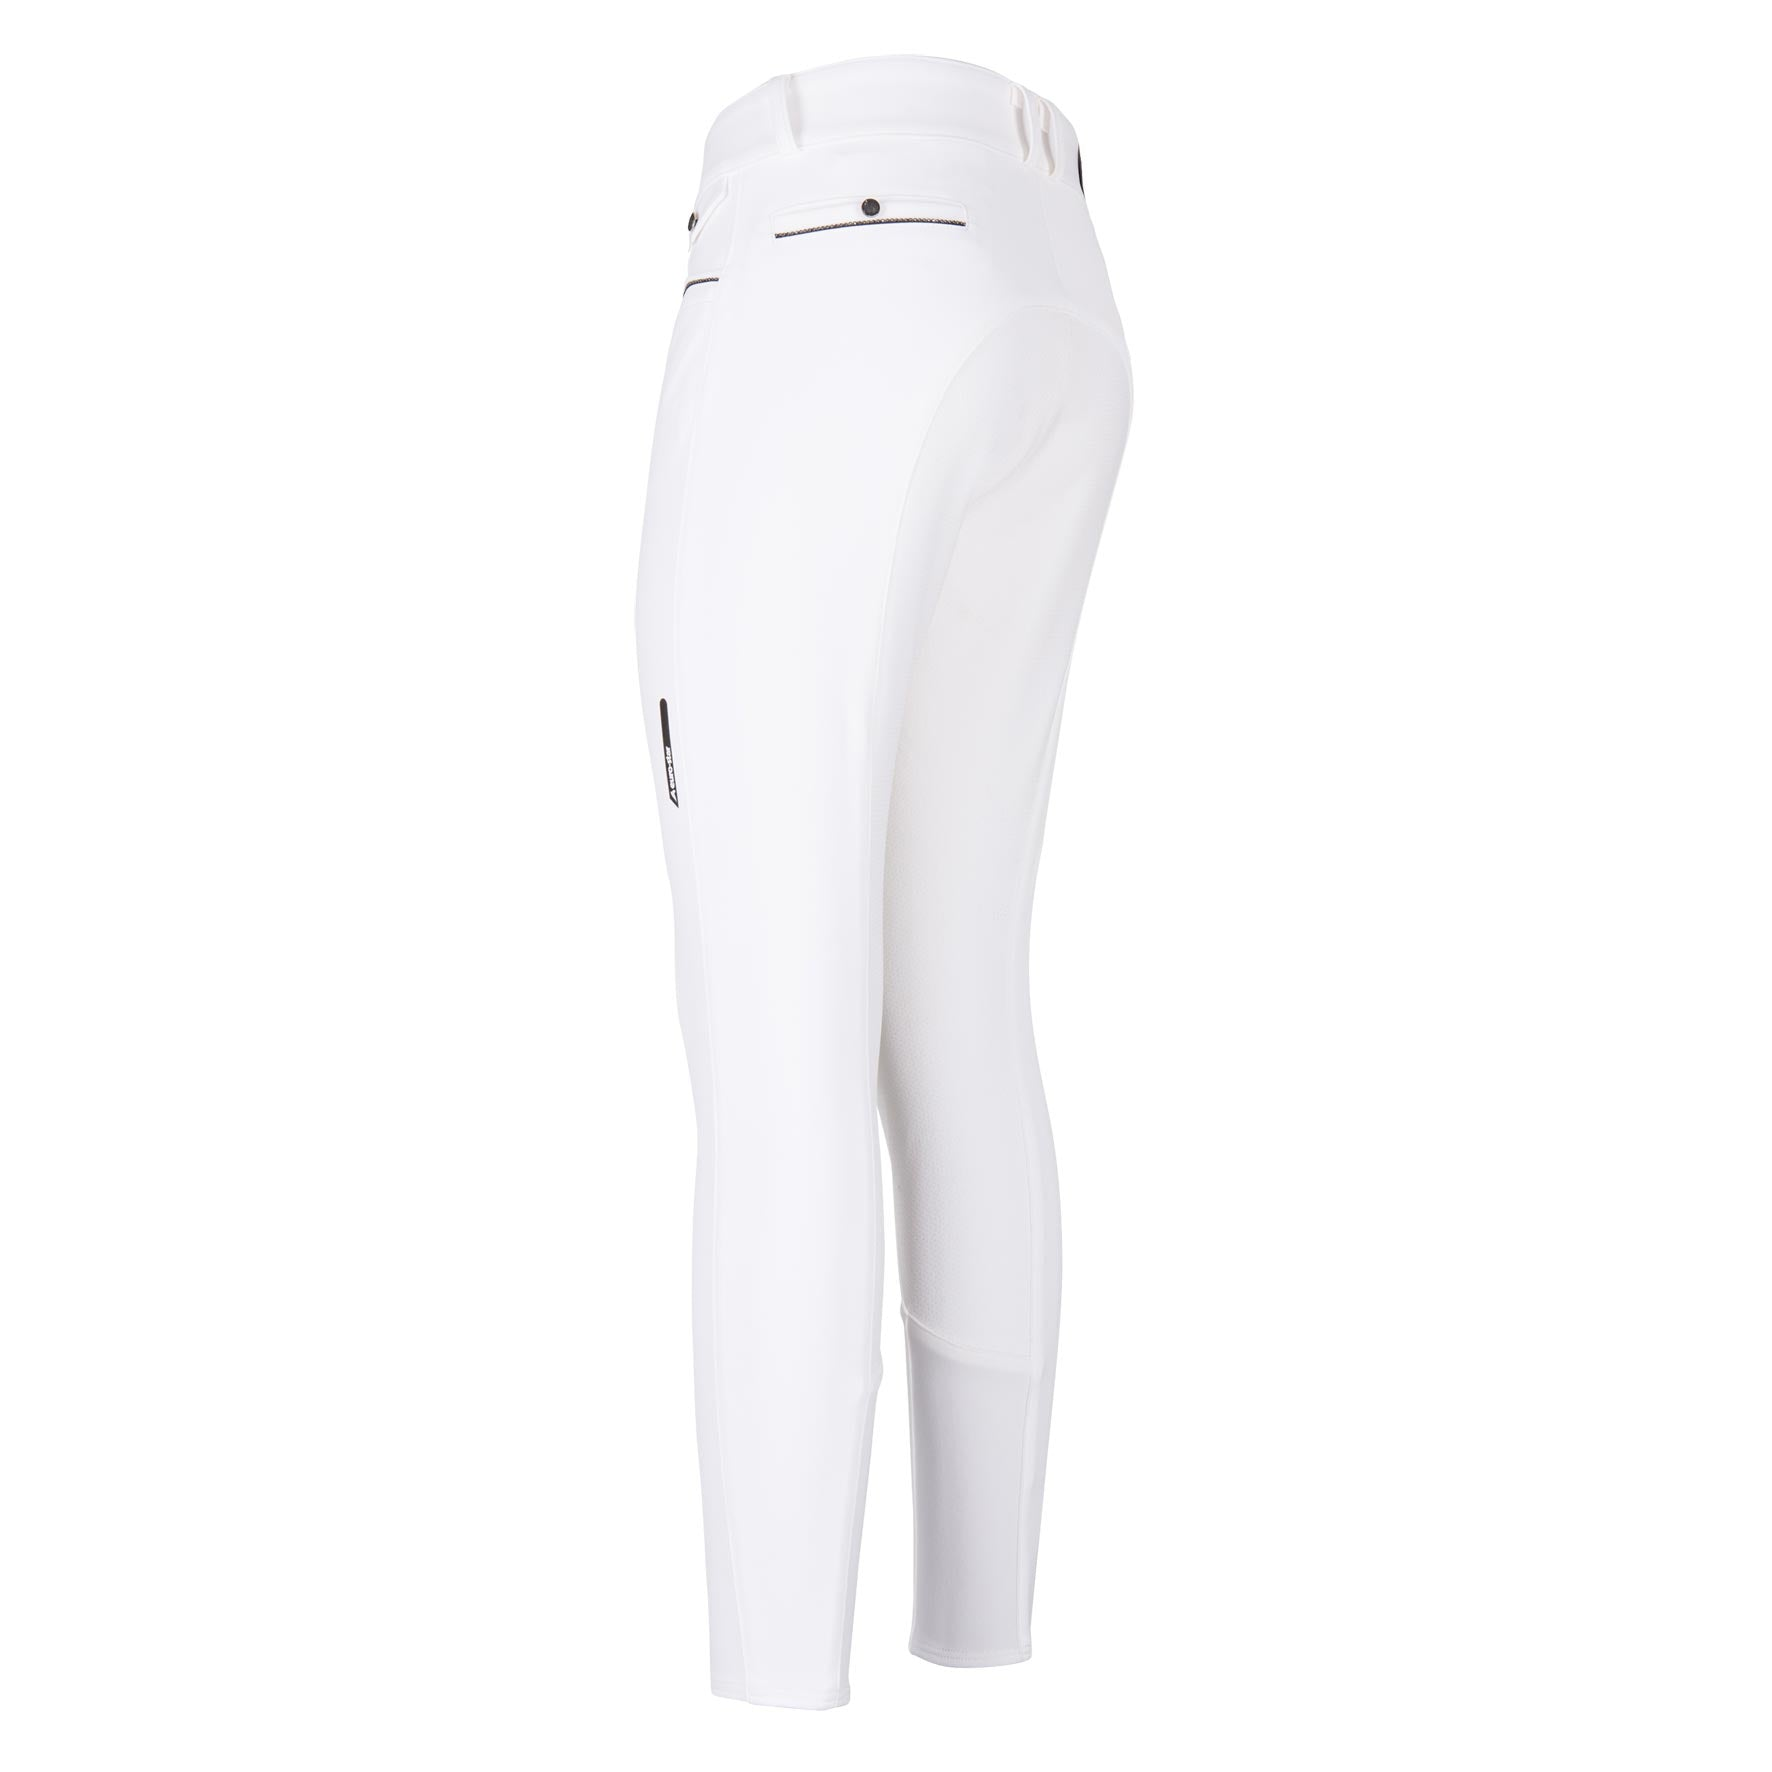 EURO-STAR ARIELLE FULL GRIP BREECHES - WHITE